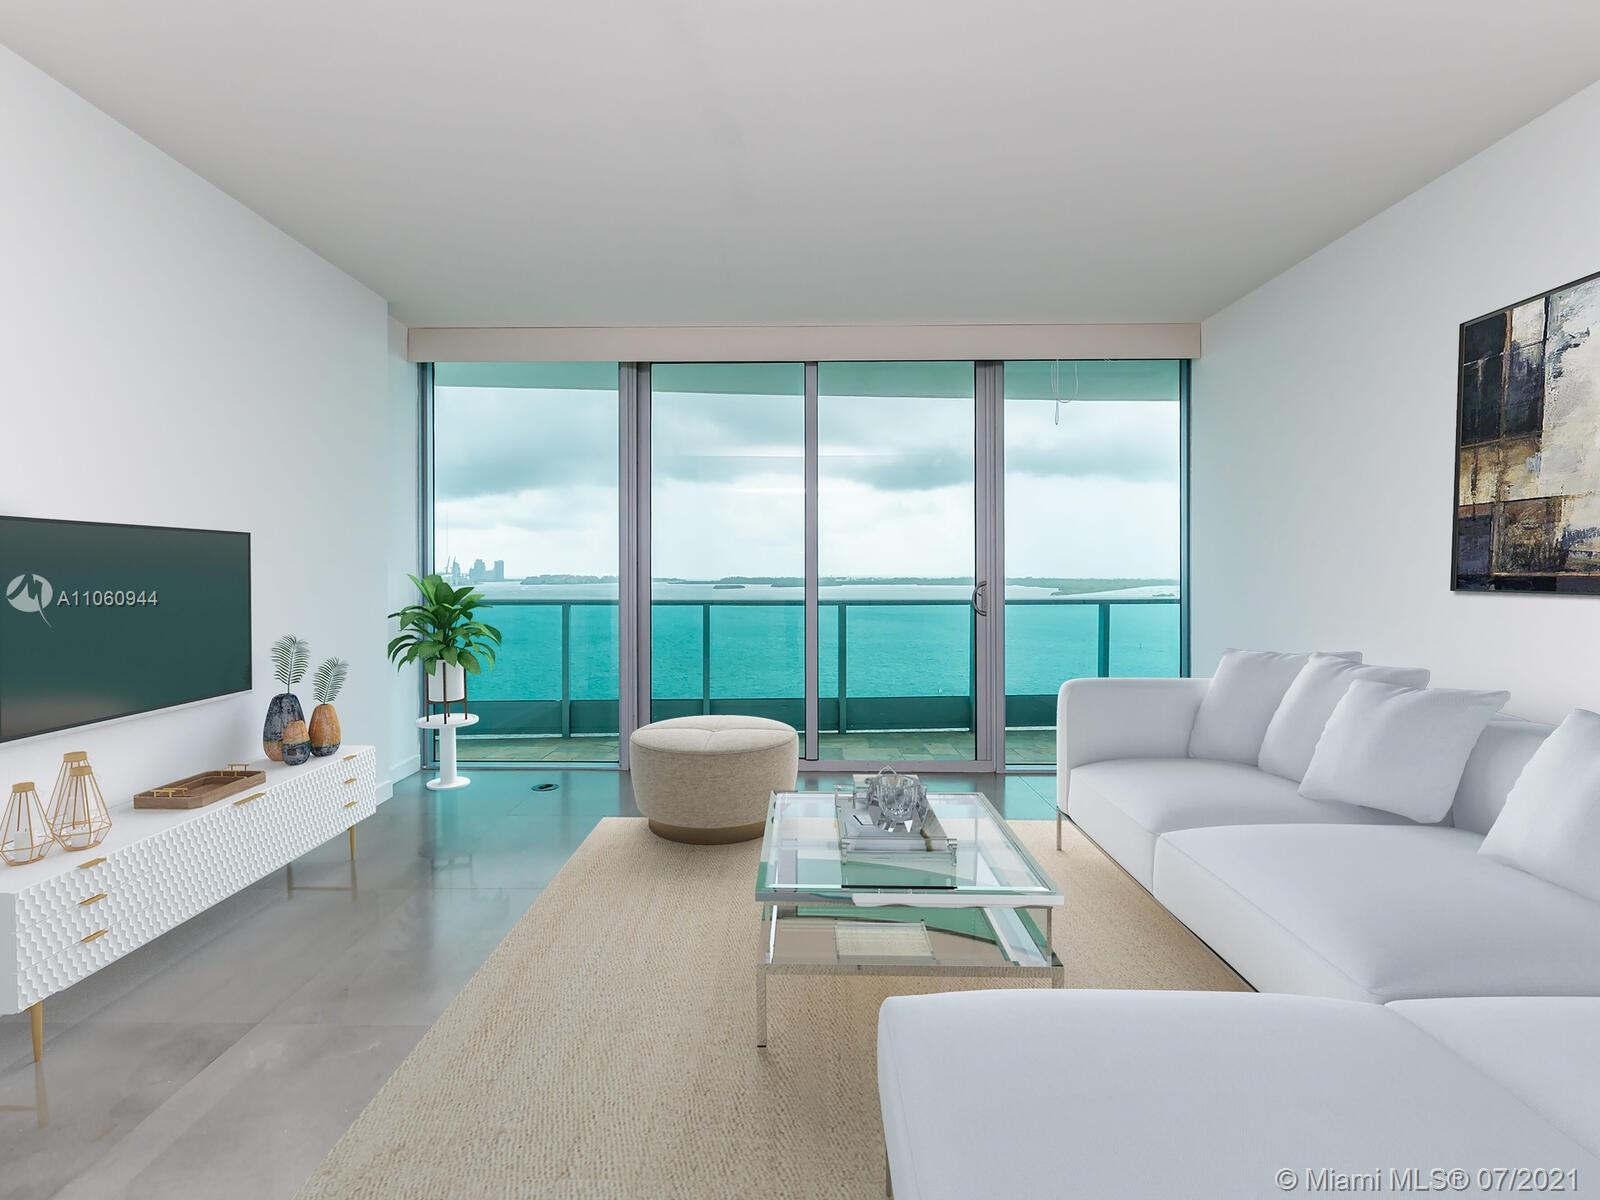 Enjoy spectacular water views from this 2bed,3bath +DEN unit with expansive balcony overlooking the Ocean, Biscayne Bay & Miami Beach in one of the best lines in the building. A private elevator will bring you right into the residence, offering unique Italian floors, Euro-style kitchen, SS Appliances, stone counters. Jade is a sophisticated Bldg.with a 5 Star resort-style amenities: state of the art fitness center, health spa, water-front pool, Business Center, Roof top Community room, full service concierge,24hr valet parking,Two parking spaces included: one assigned, and one complementary valet parking. Jade is located in the heart of Miami Financial Brickell Area, steps to Brickell City Center, Mary Brickell Village, metro mover, shops and Restaurants